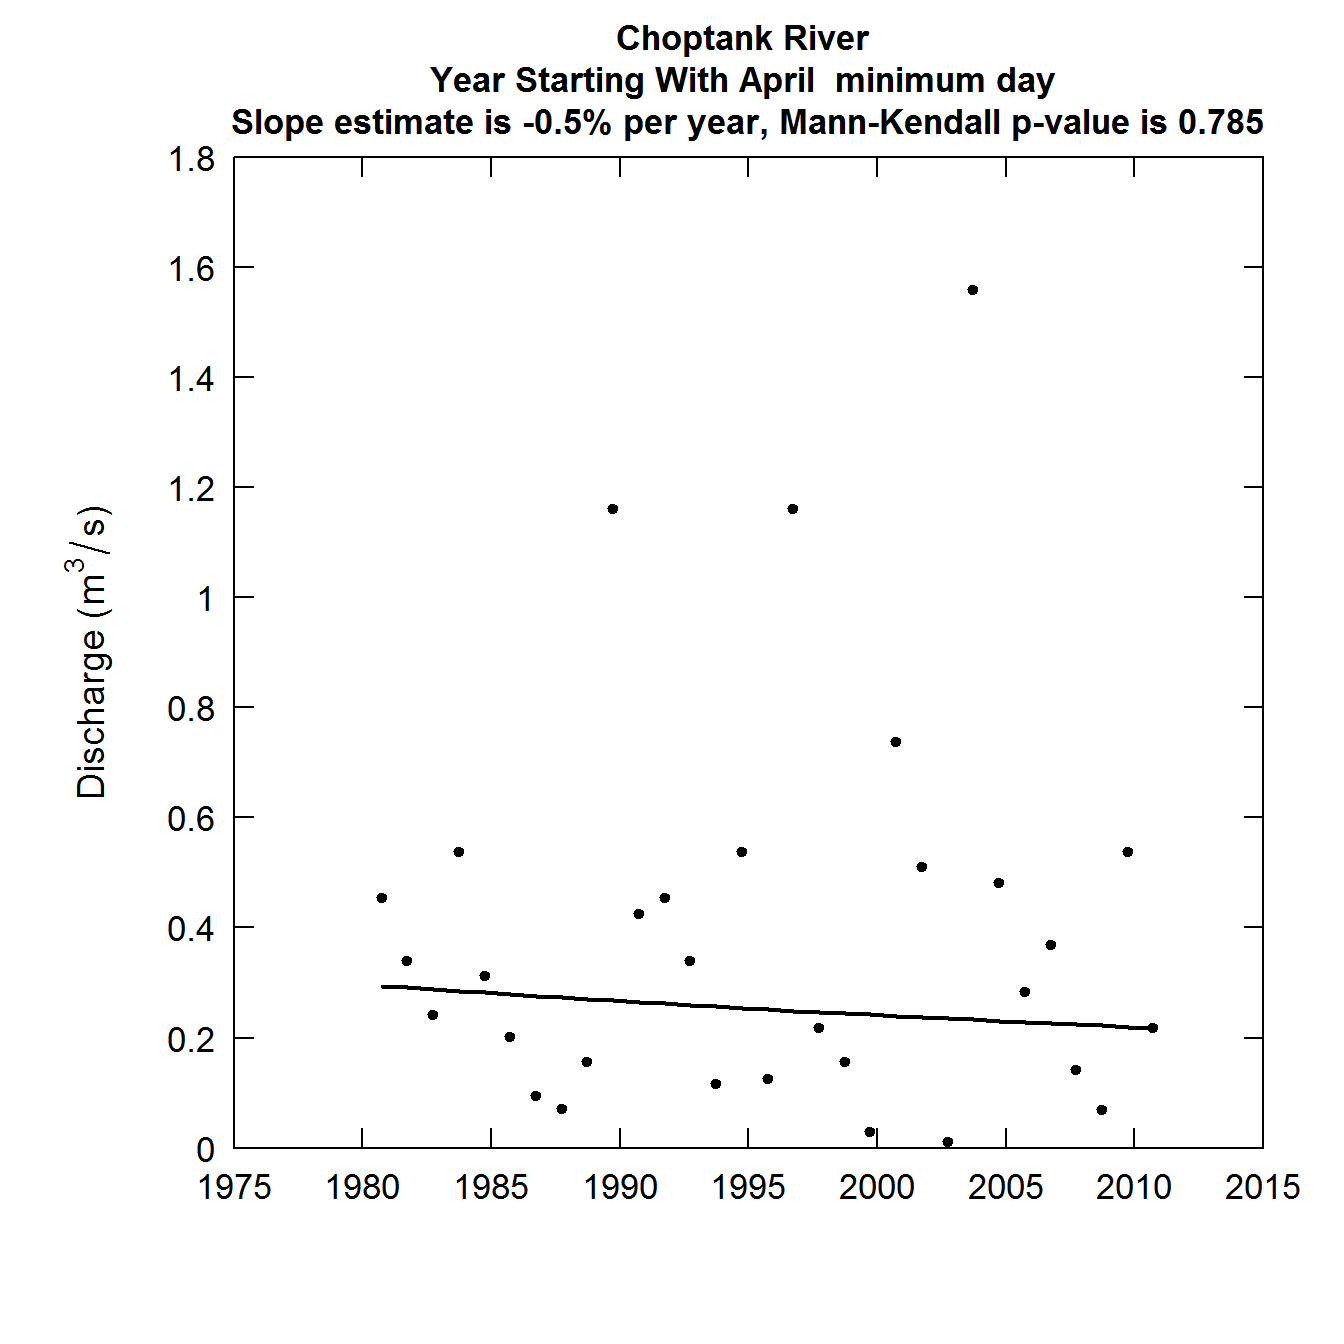 Discharge as a function of Year, slope estimates and Mann-Kendall p-value